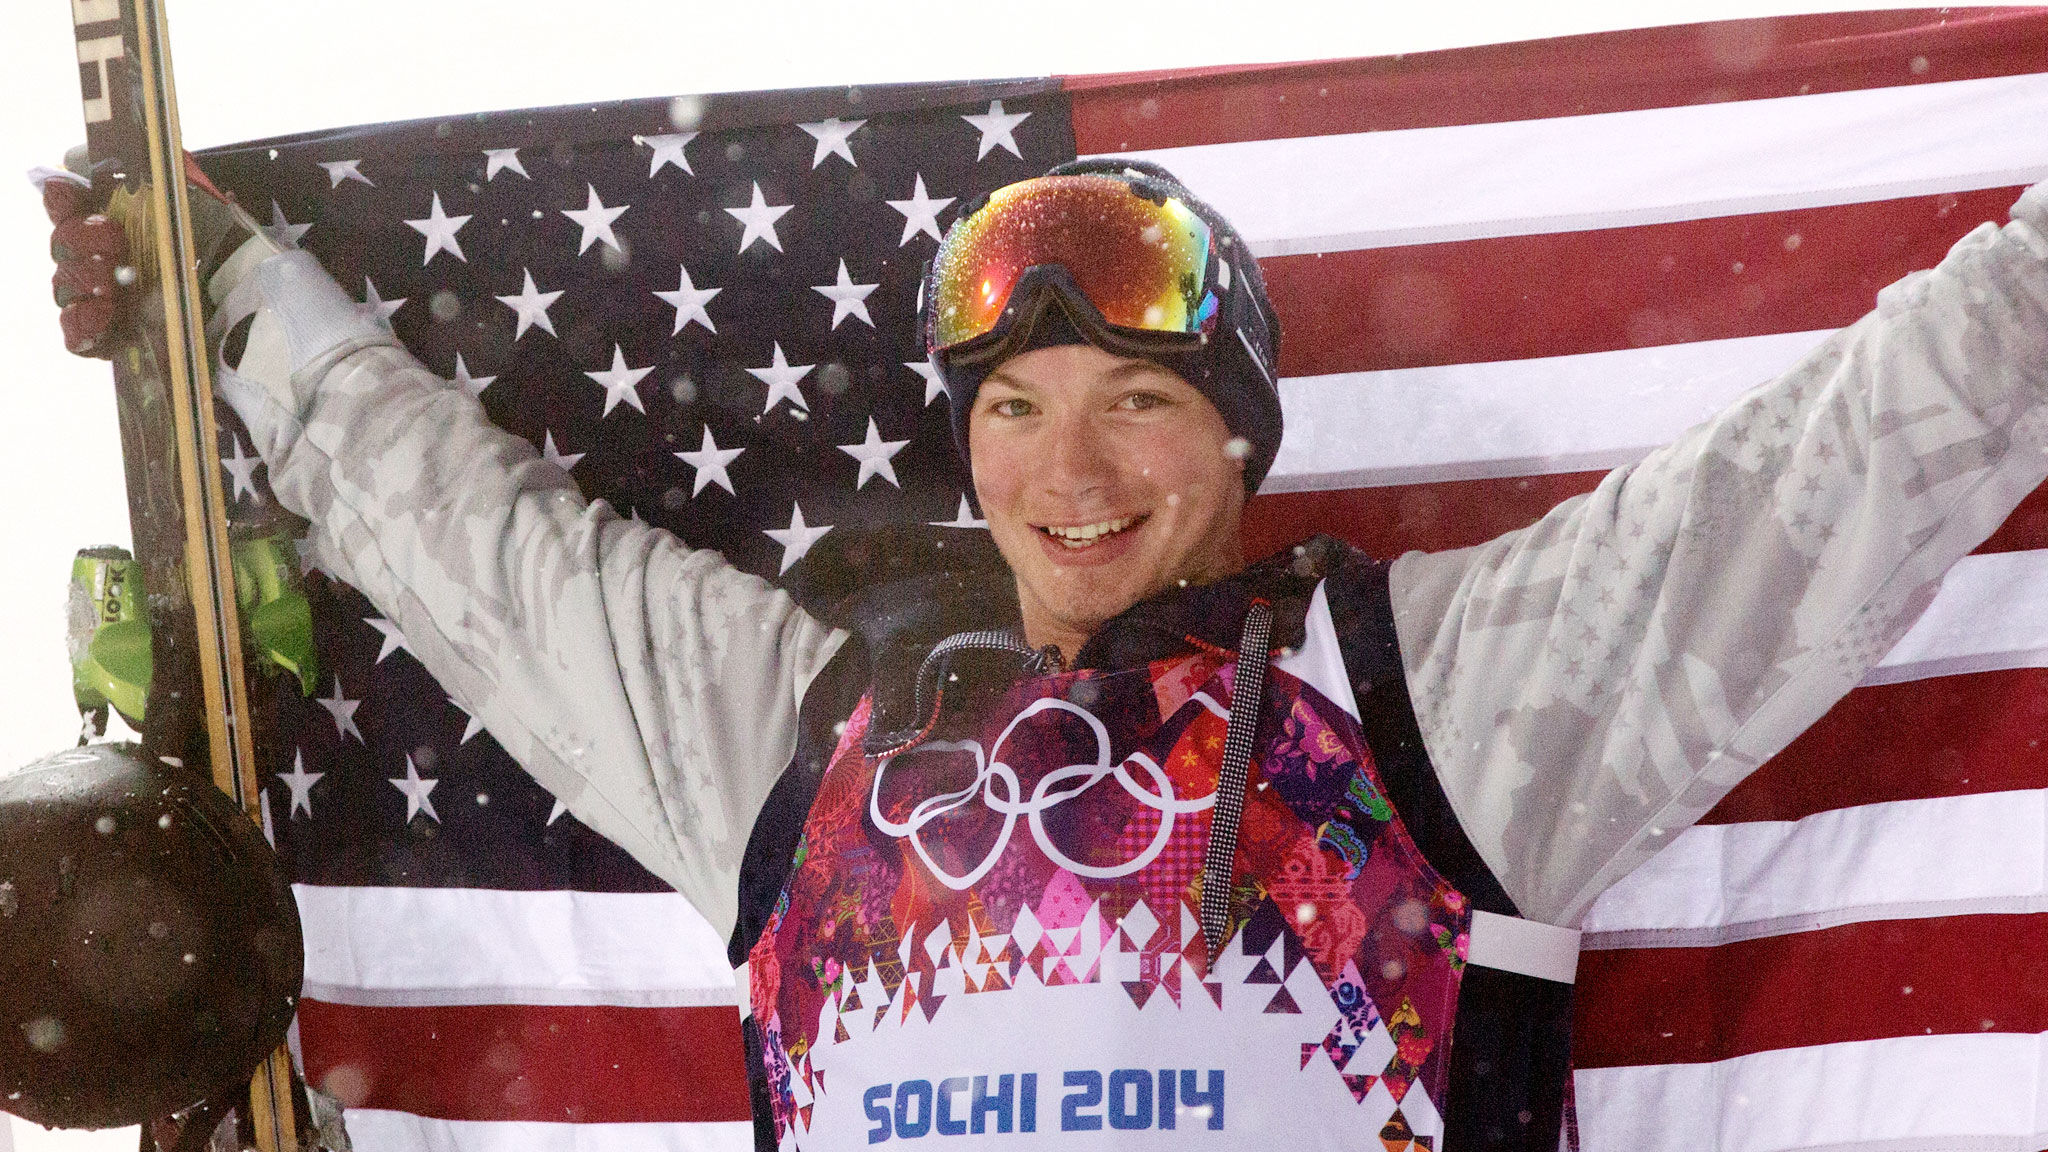 I can honestly say freeskiing has made me who I am, David Wise says.